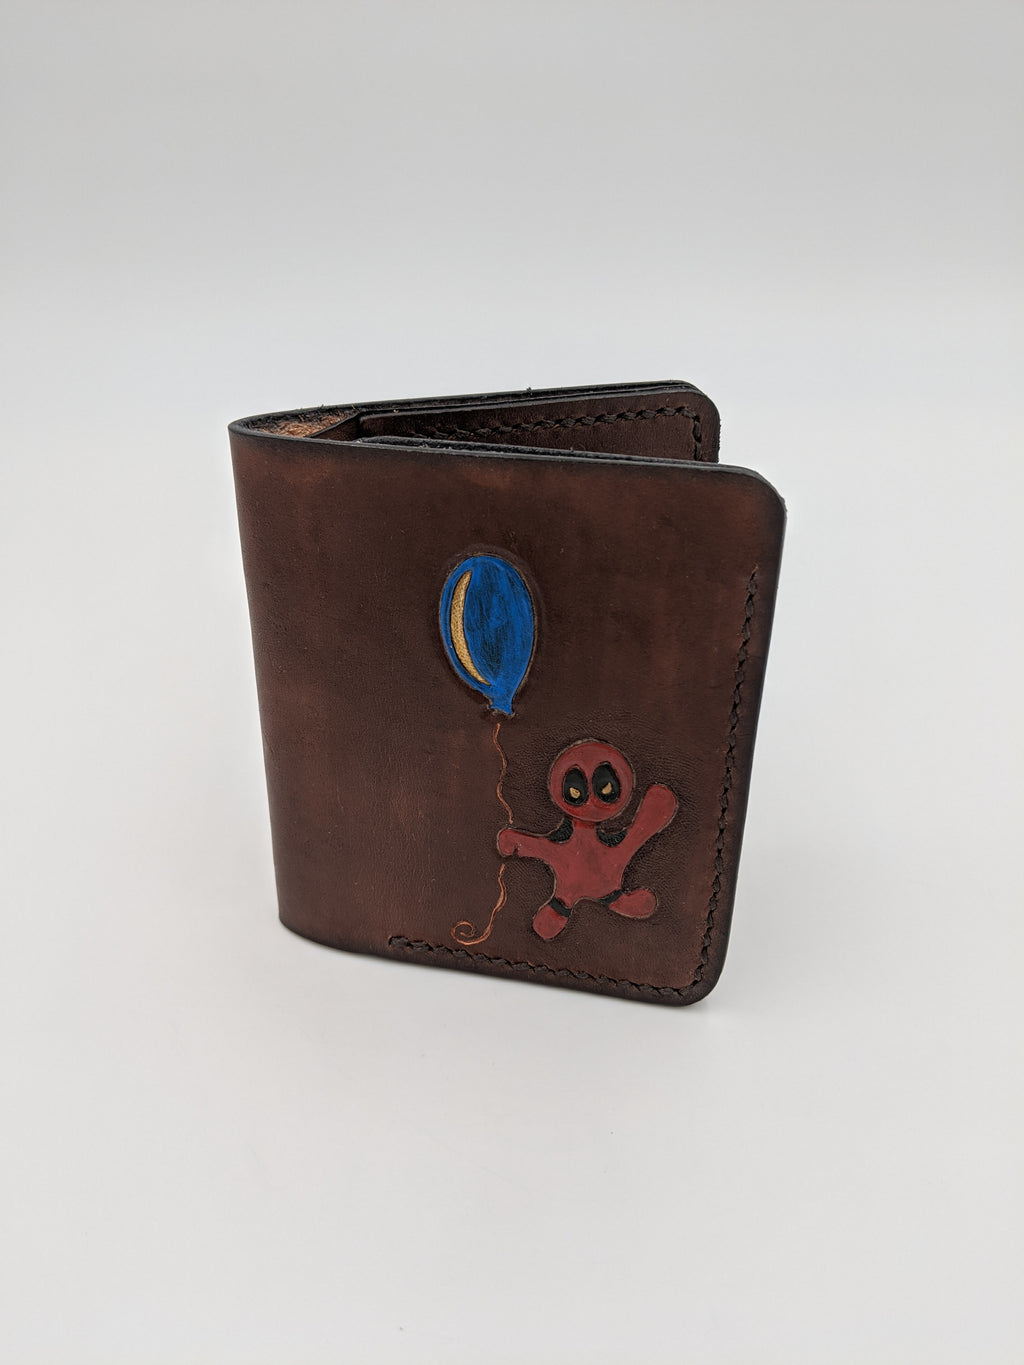 Handmade leather bifold wallet, card slots and billfold, Deadpool inspired design